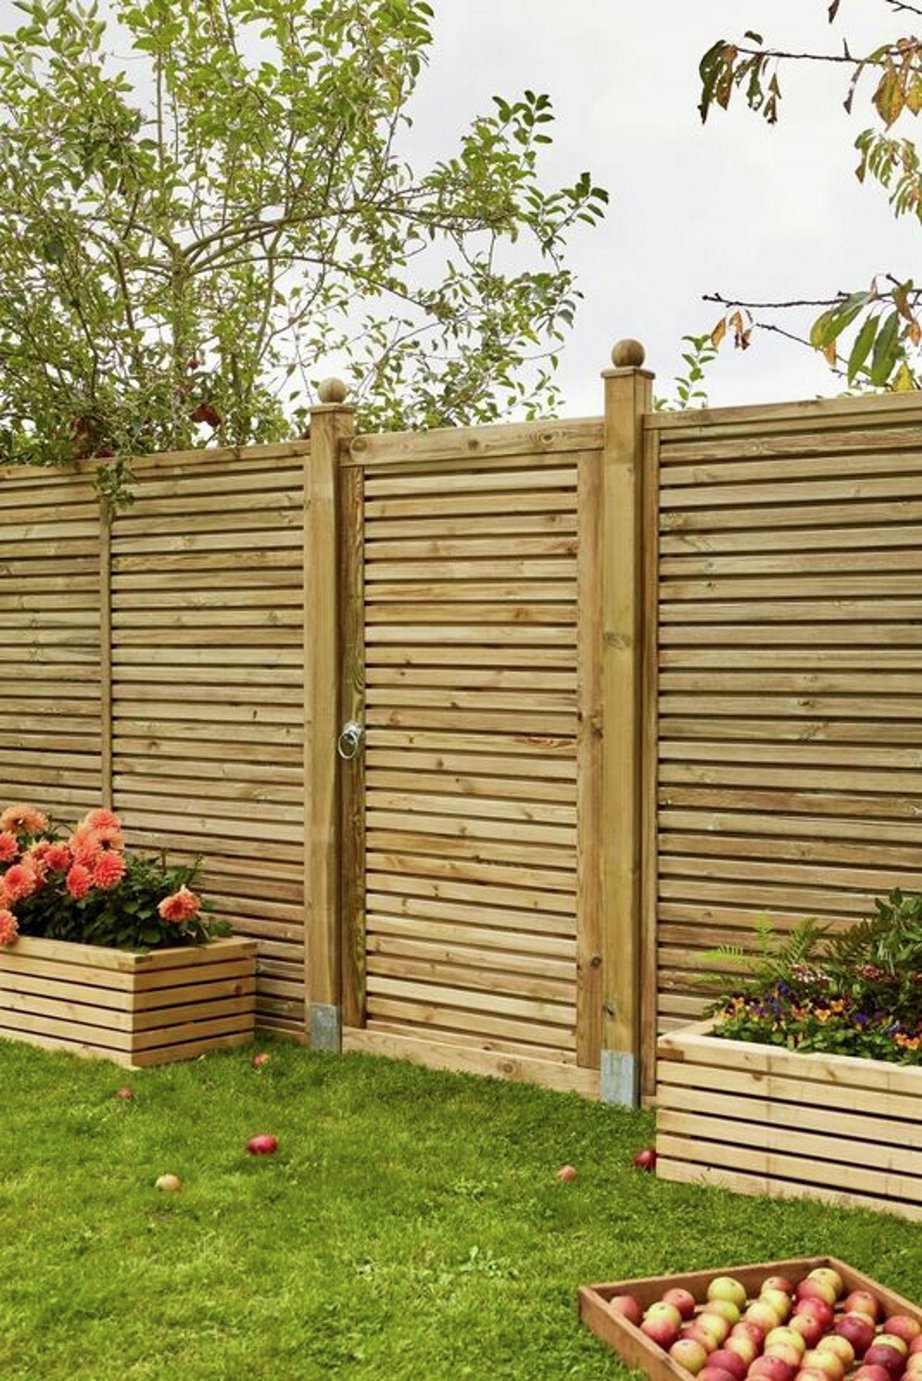 Image of Grange Fencing Contemporary Vogue Gate